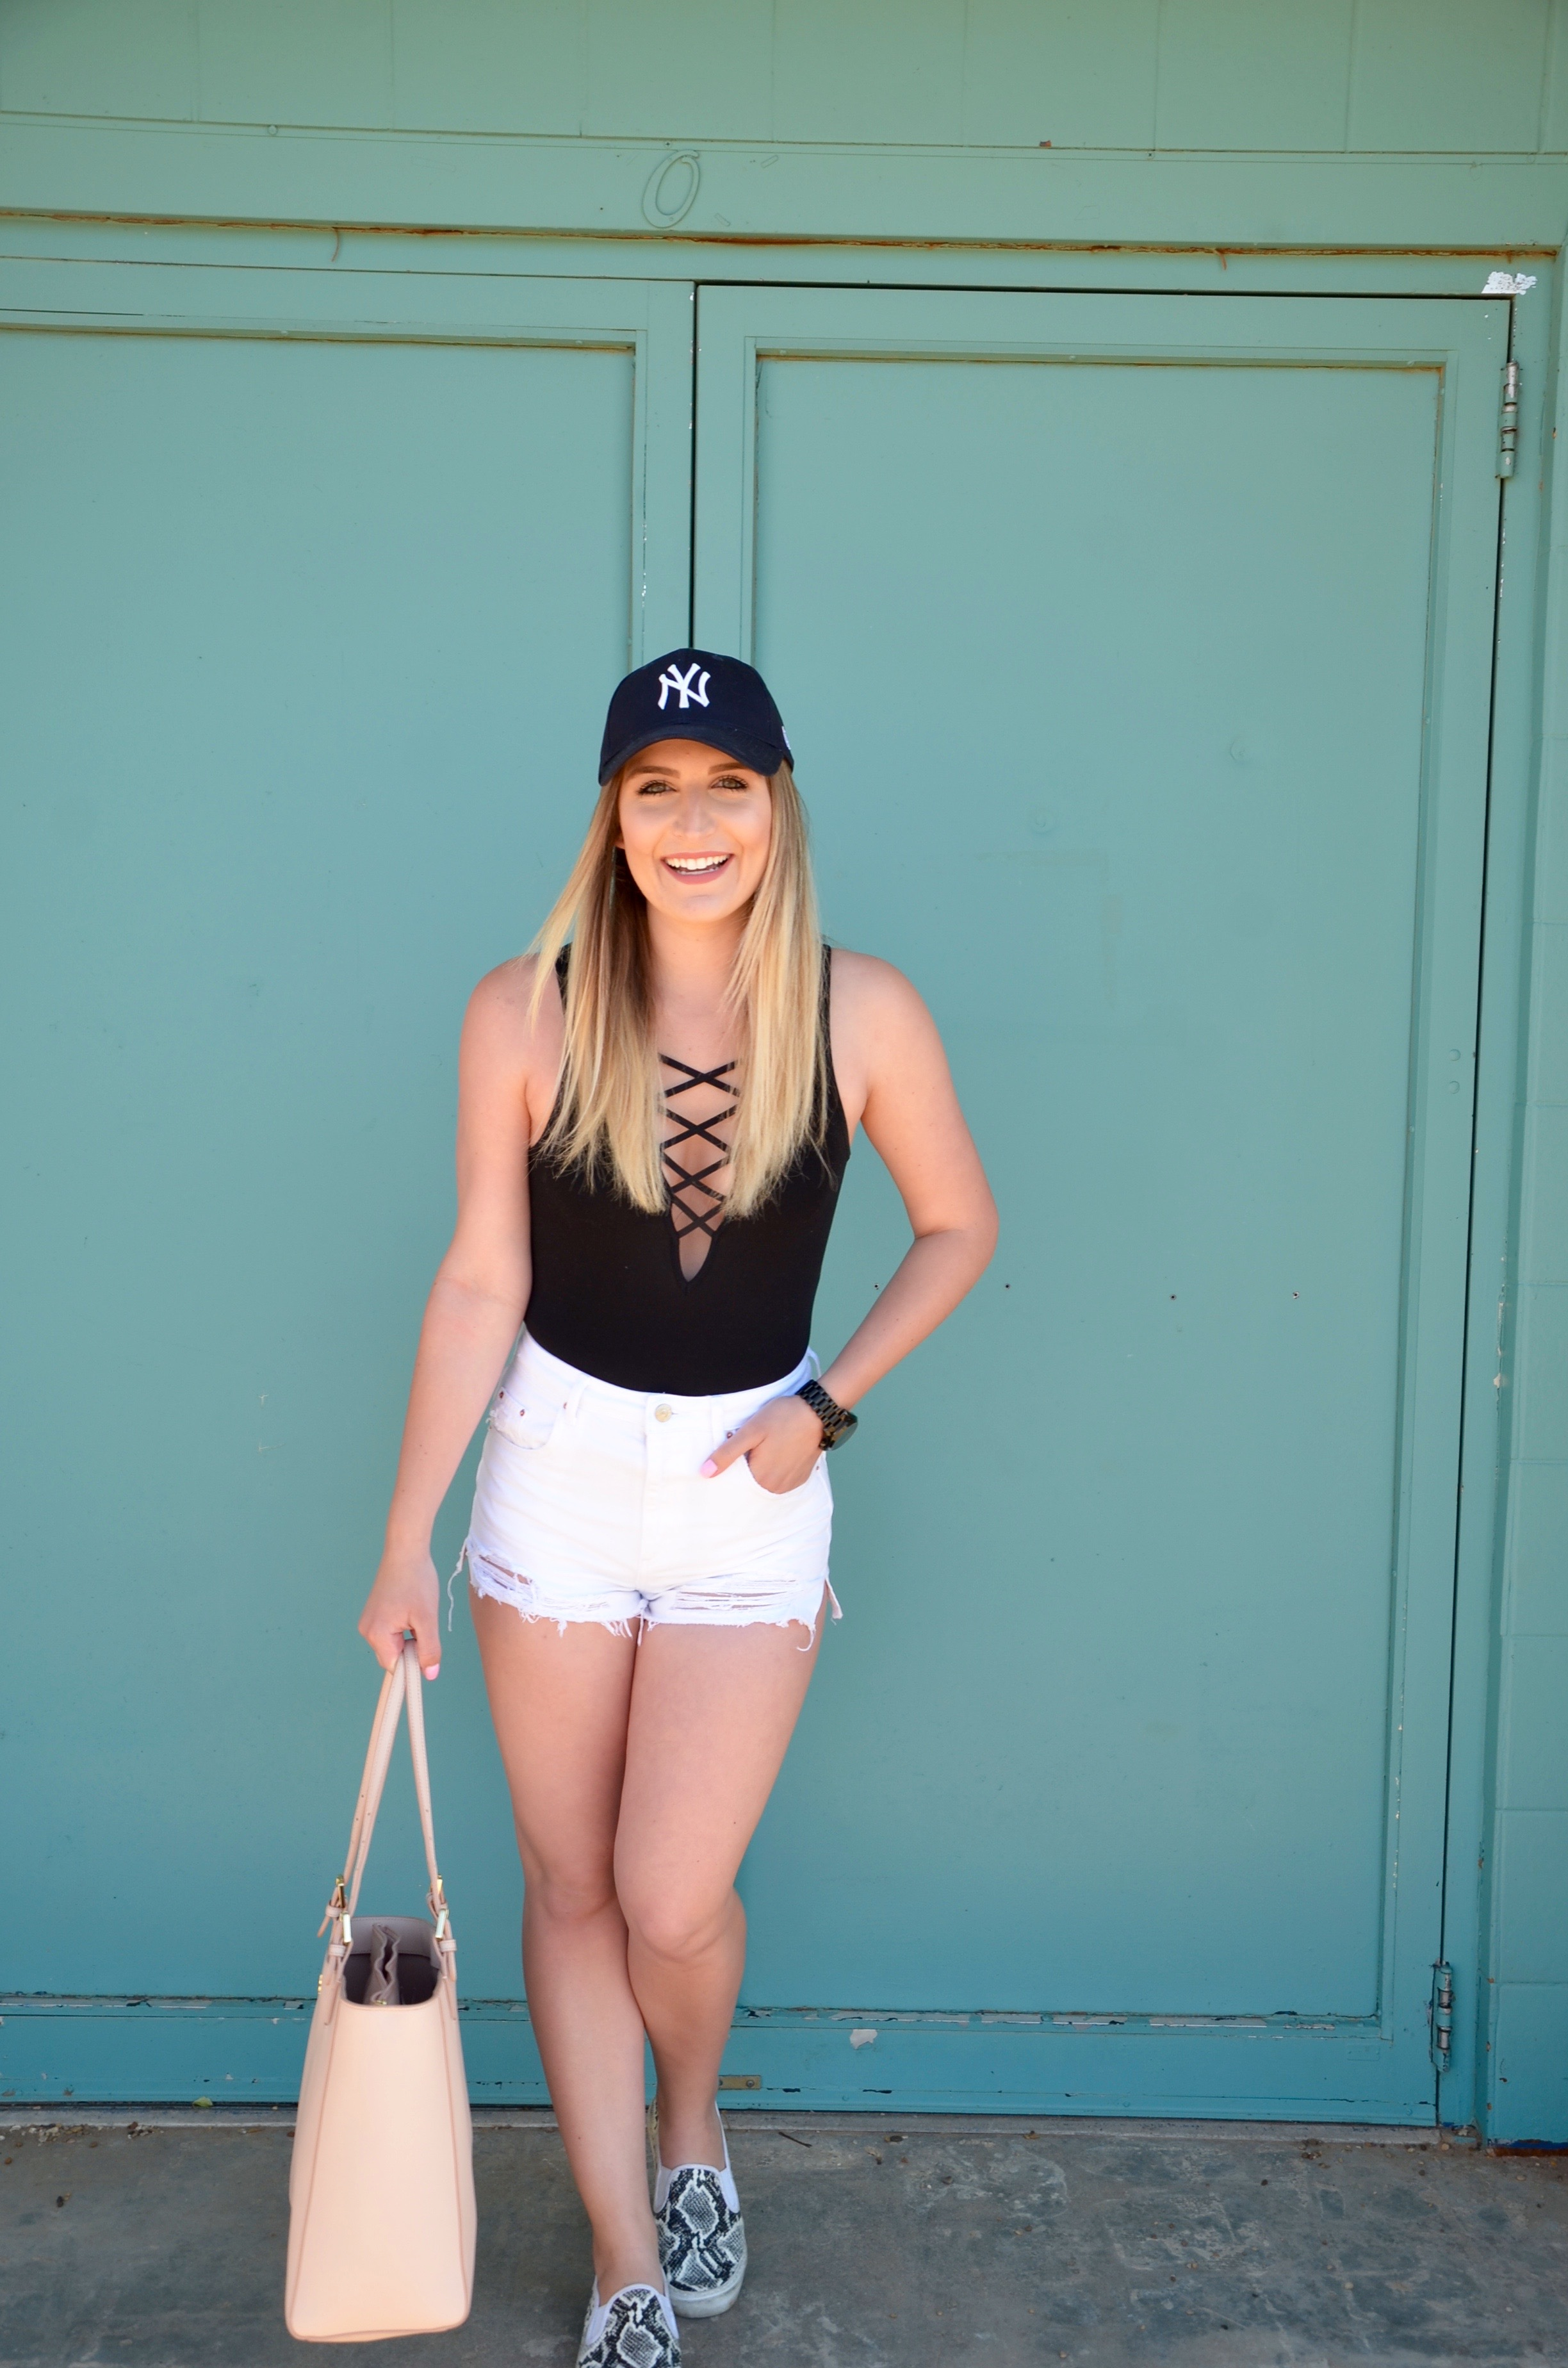 full body outfit of the day - Travel Outfit Of The Day by popular Texas style blogger Audrey Madison Stowe